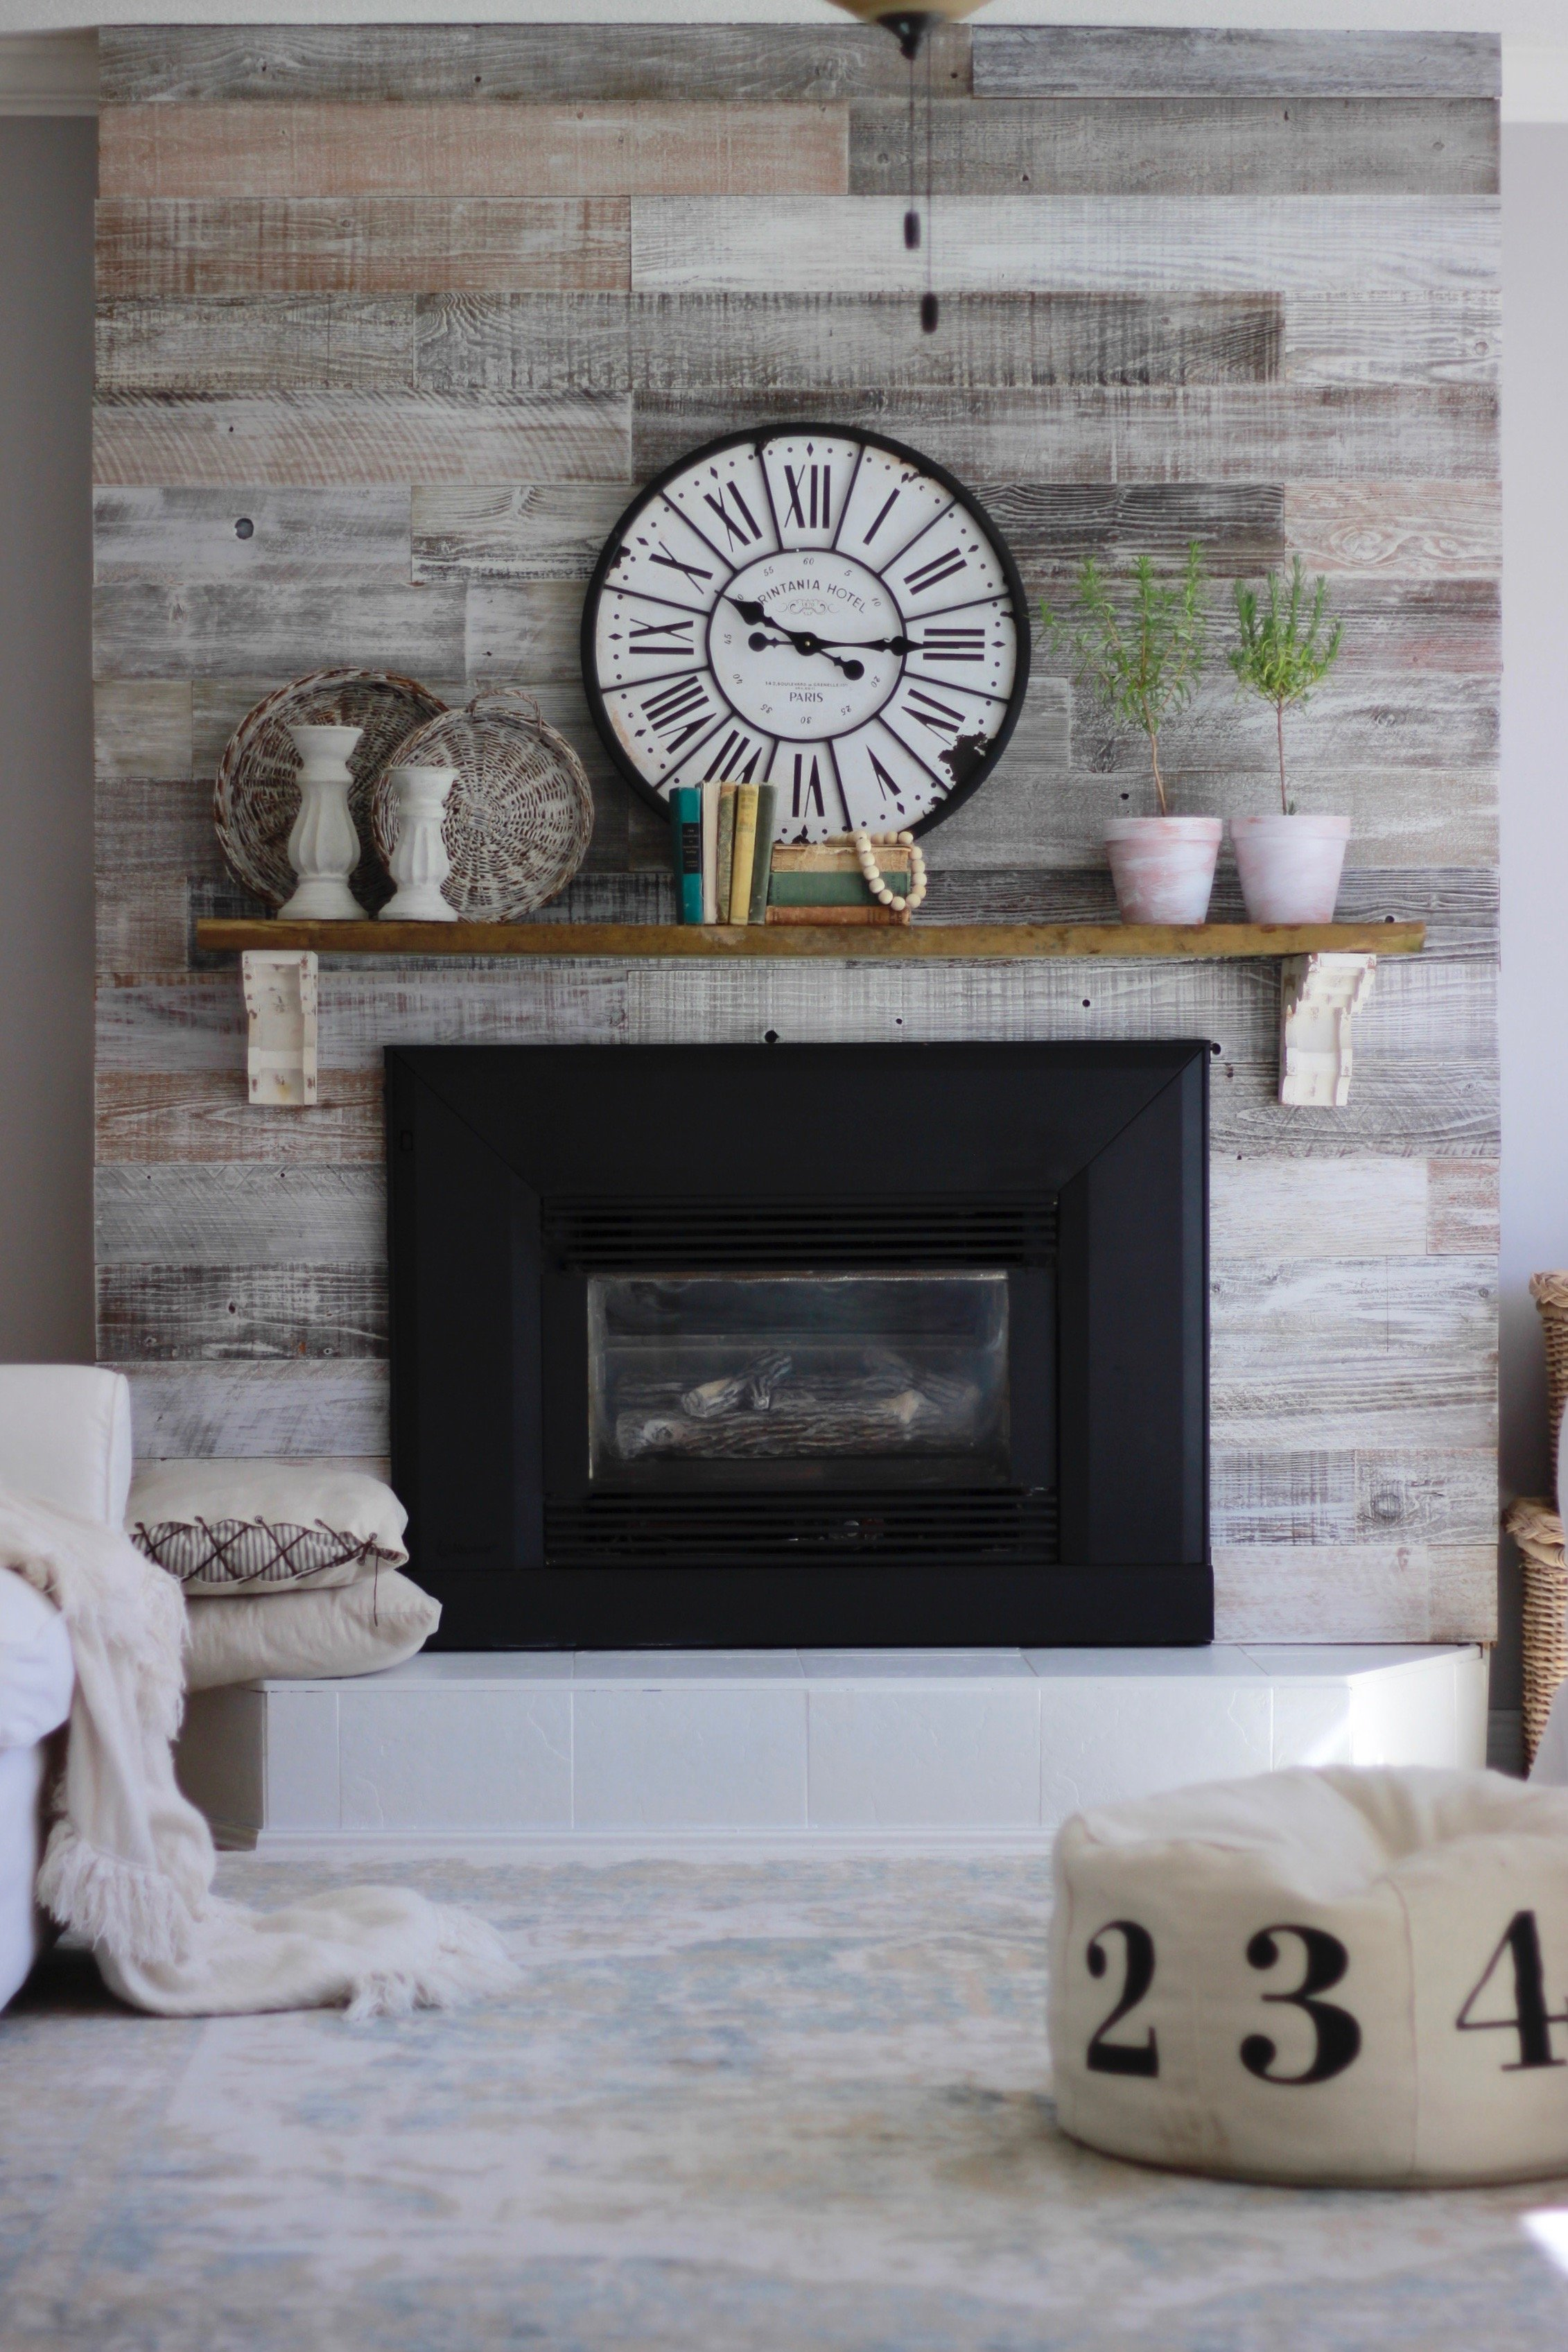 Fireplace Makeover With Plank and Mill. Super Easy Fireplace and Mantle DIY, We painted the tile on the fireplace and used Plank and MillReclaimed Wood to revamp the fireplace. Easy DIY Fireplace, Easy DIY Painted Tile, How To Paint Tile On Fireplace www.whitepicketfarmhouse.com #PaintedTile #fireplacemakeover #DIYFireplace